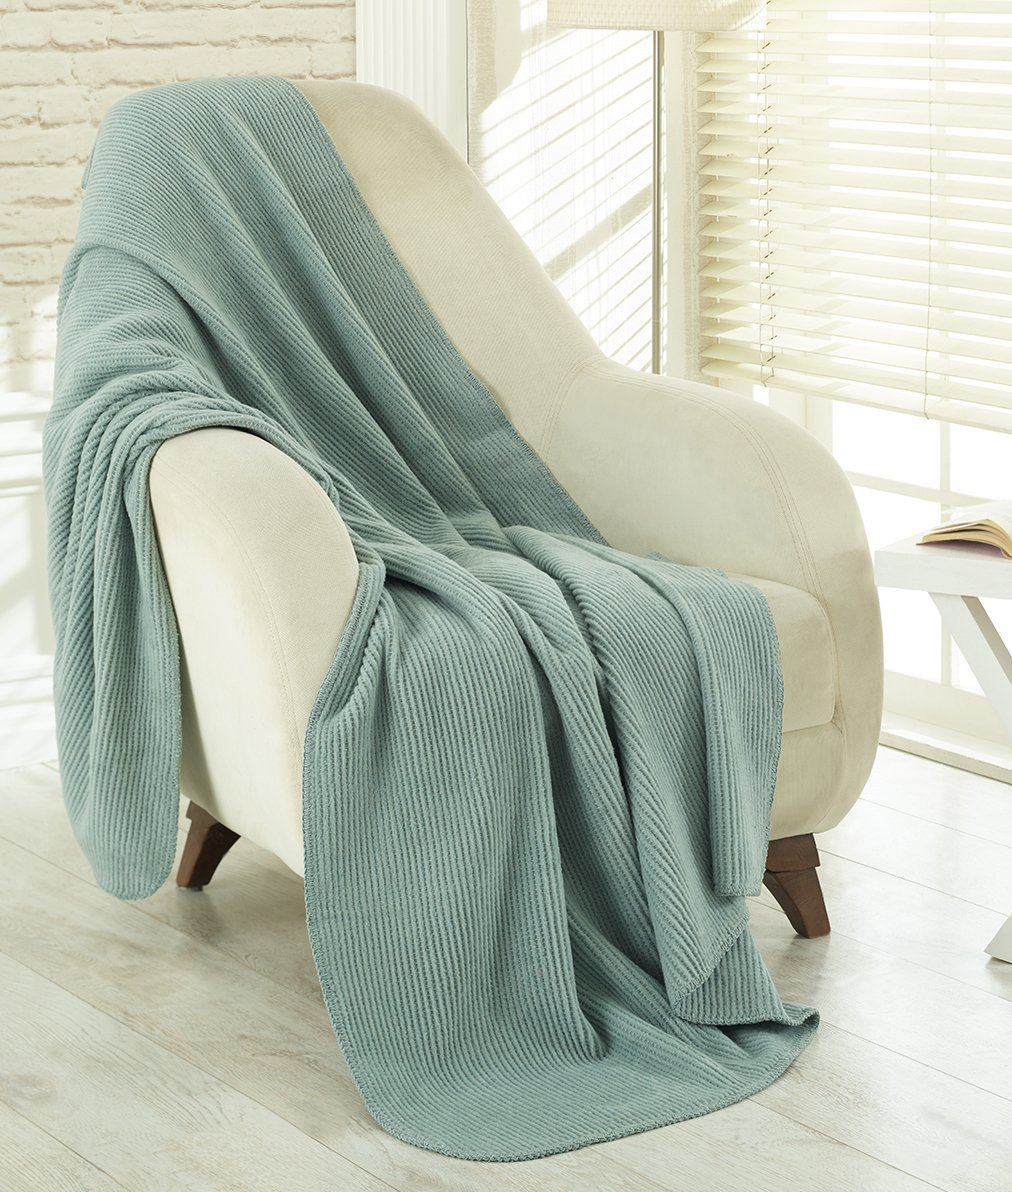 Sage green throw blankets